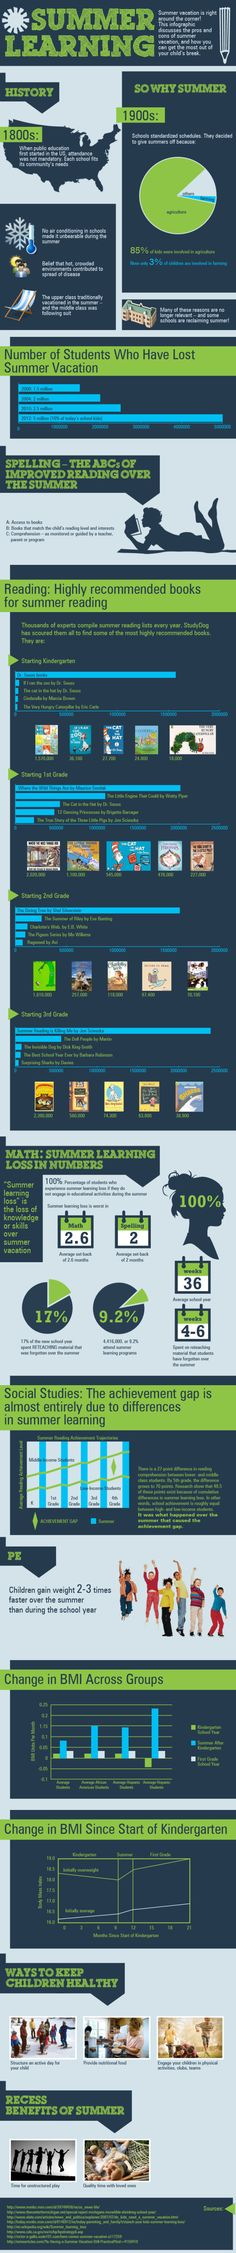 Informative infographic on summer learning.